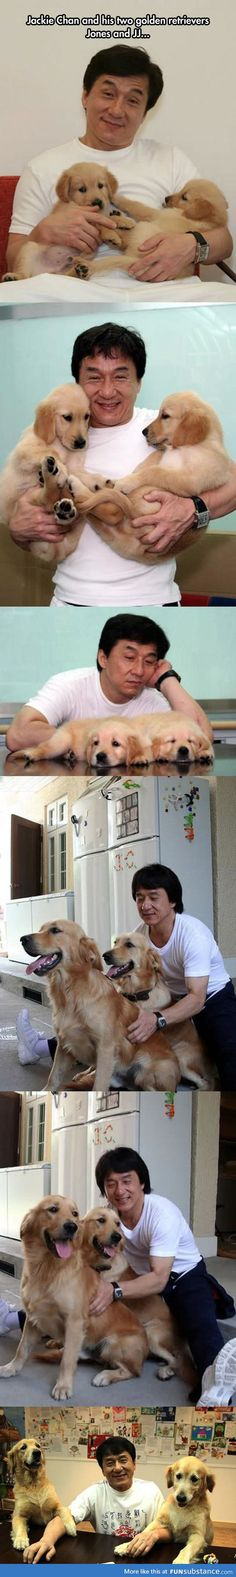 Jacky chan is a dog lover